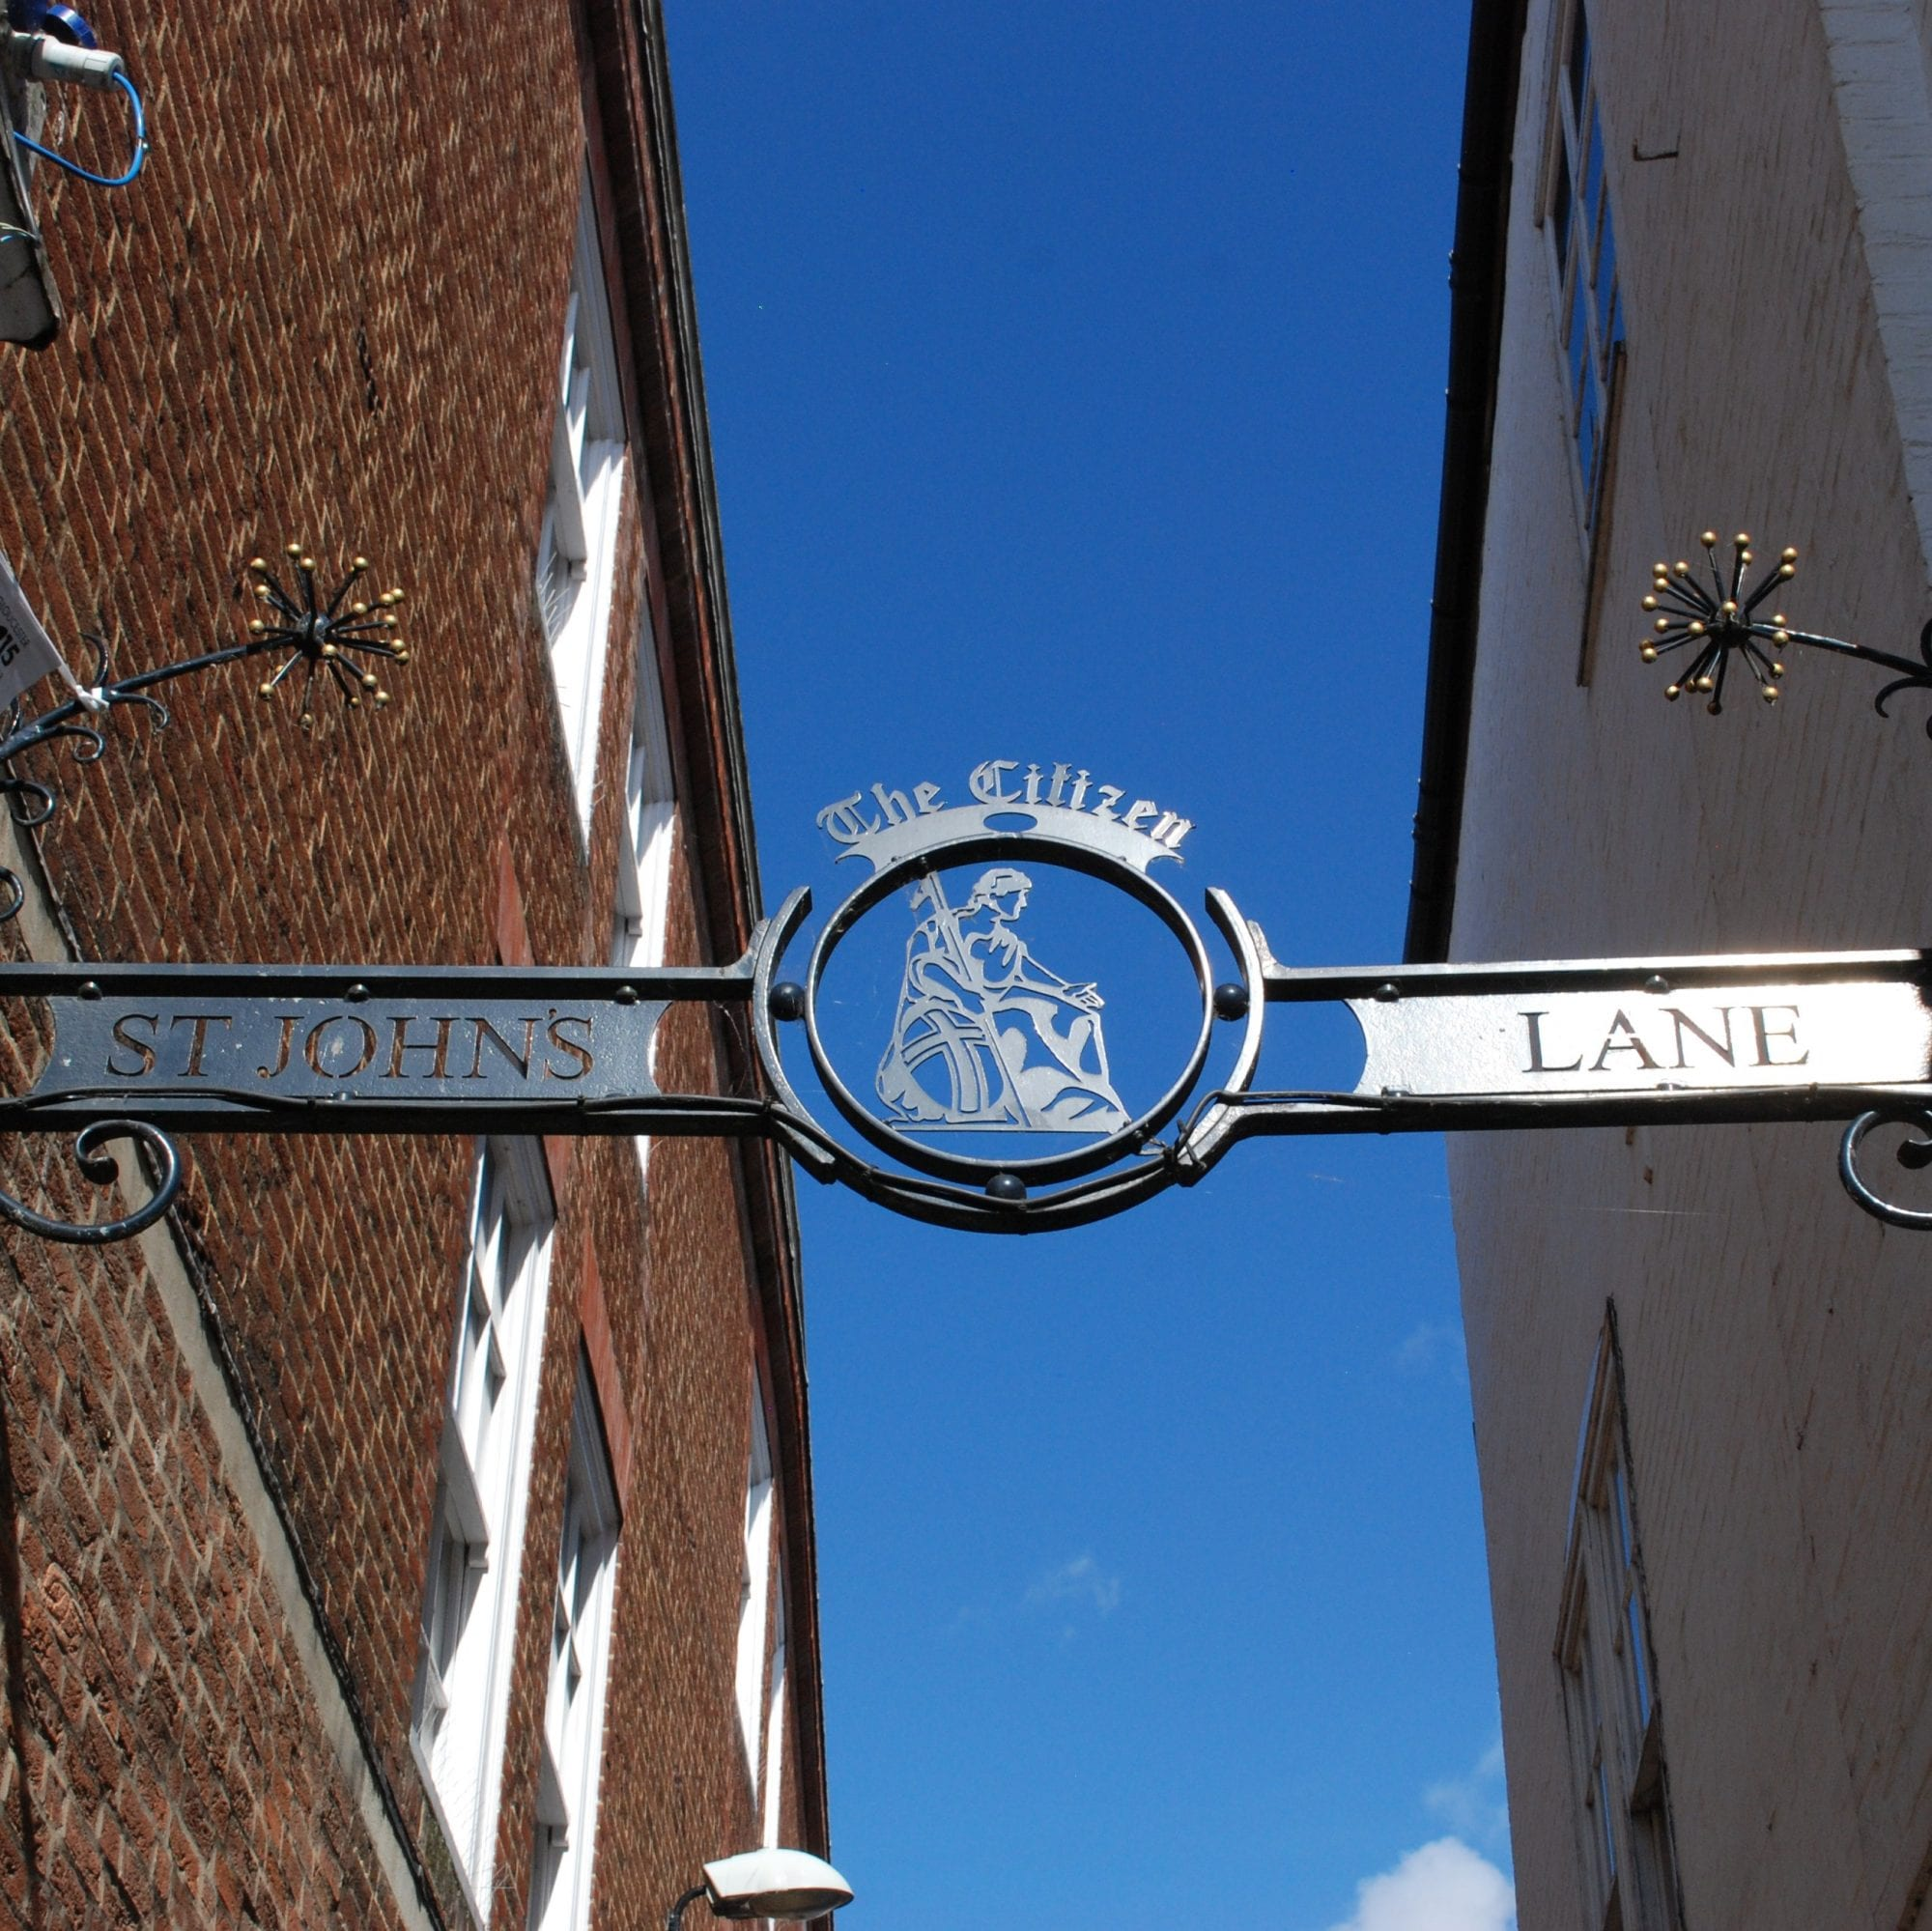 st johns lane sign